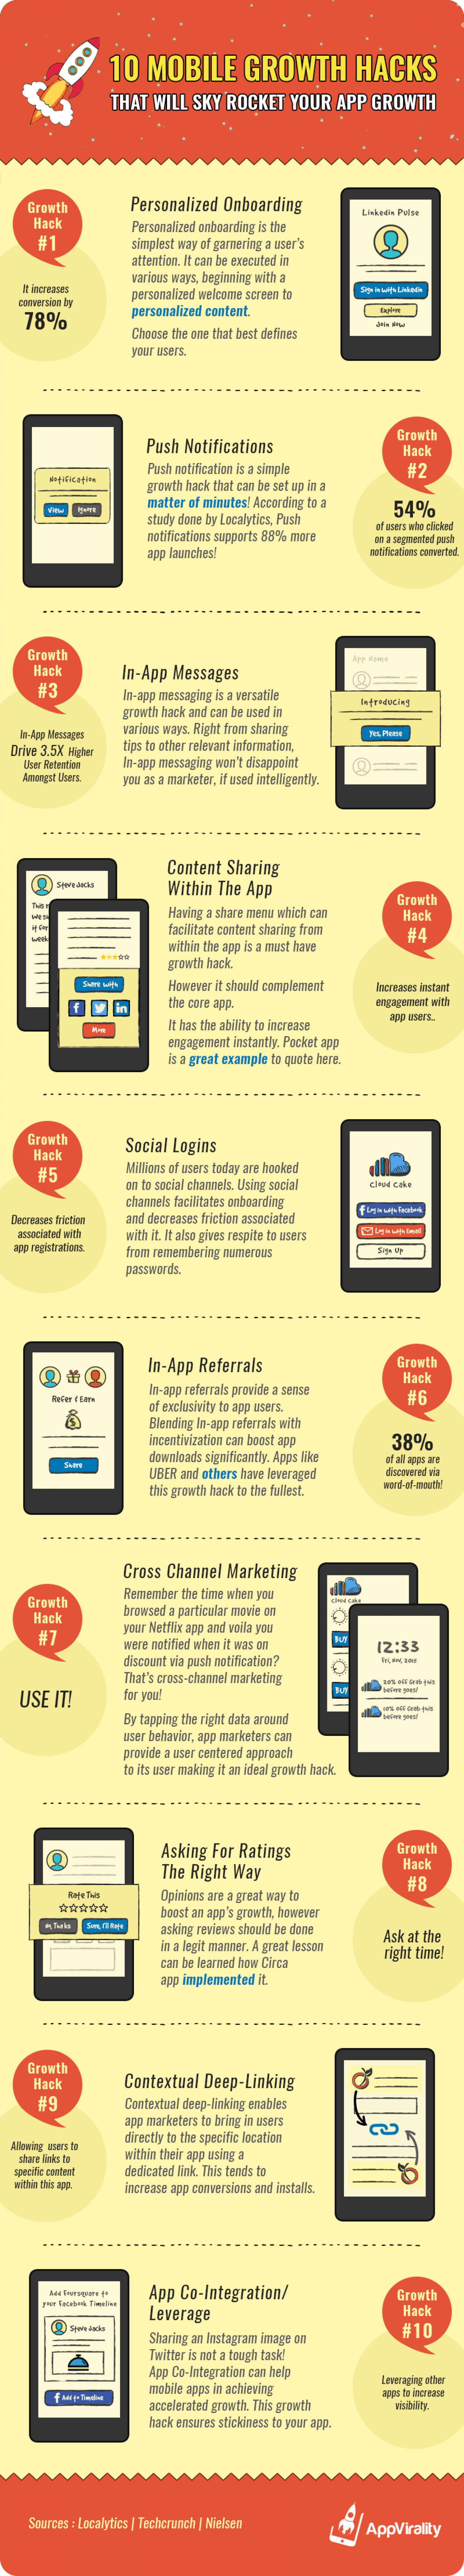 10 Kick-Ass Mobile Growth Hacks That Can Supercharge App Growth Infographic